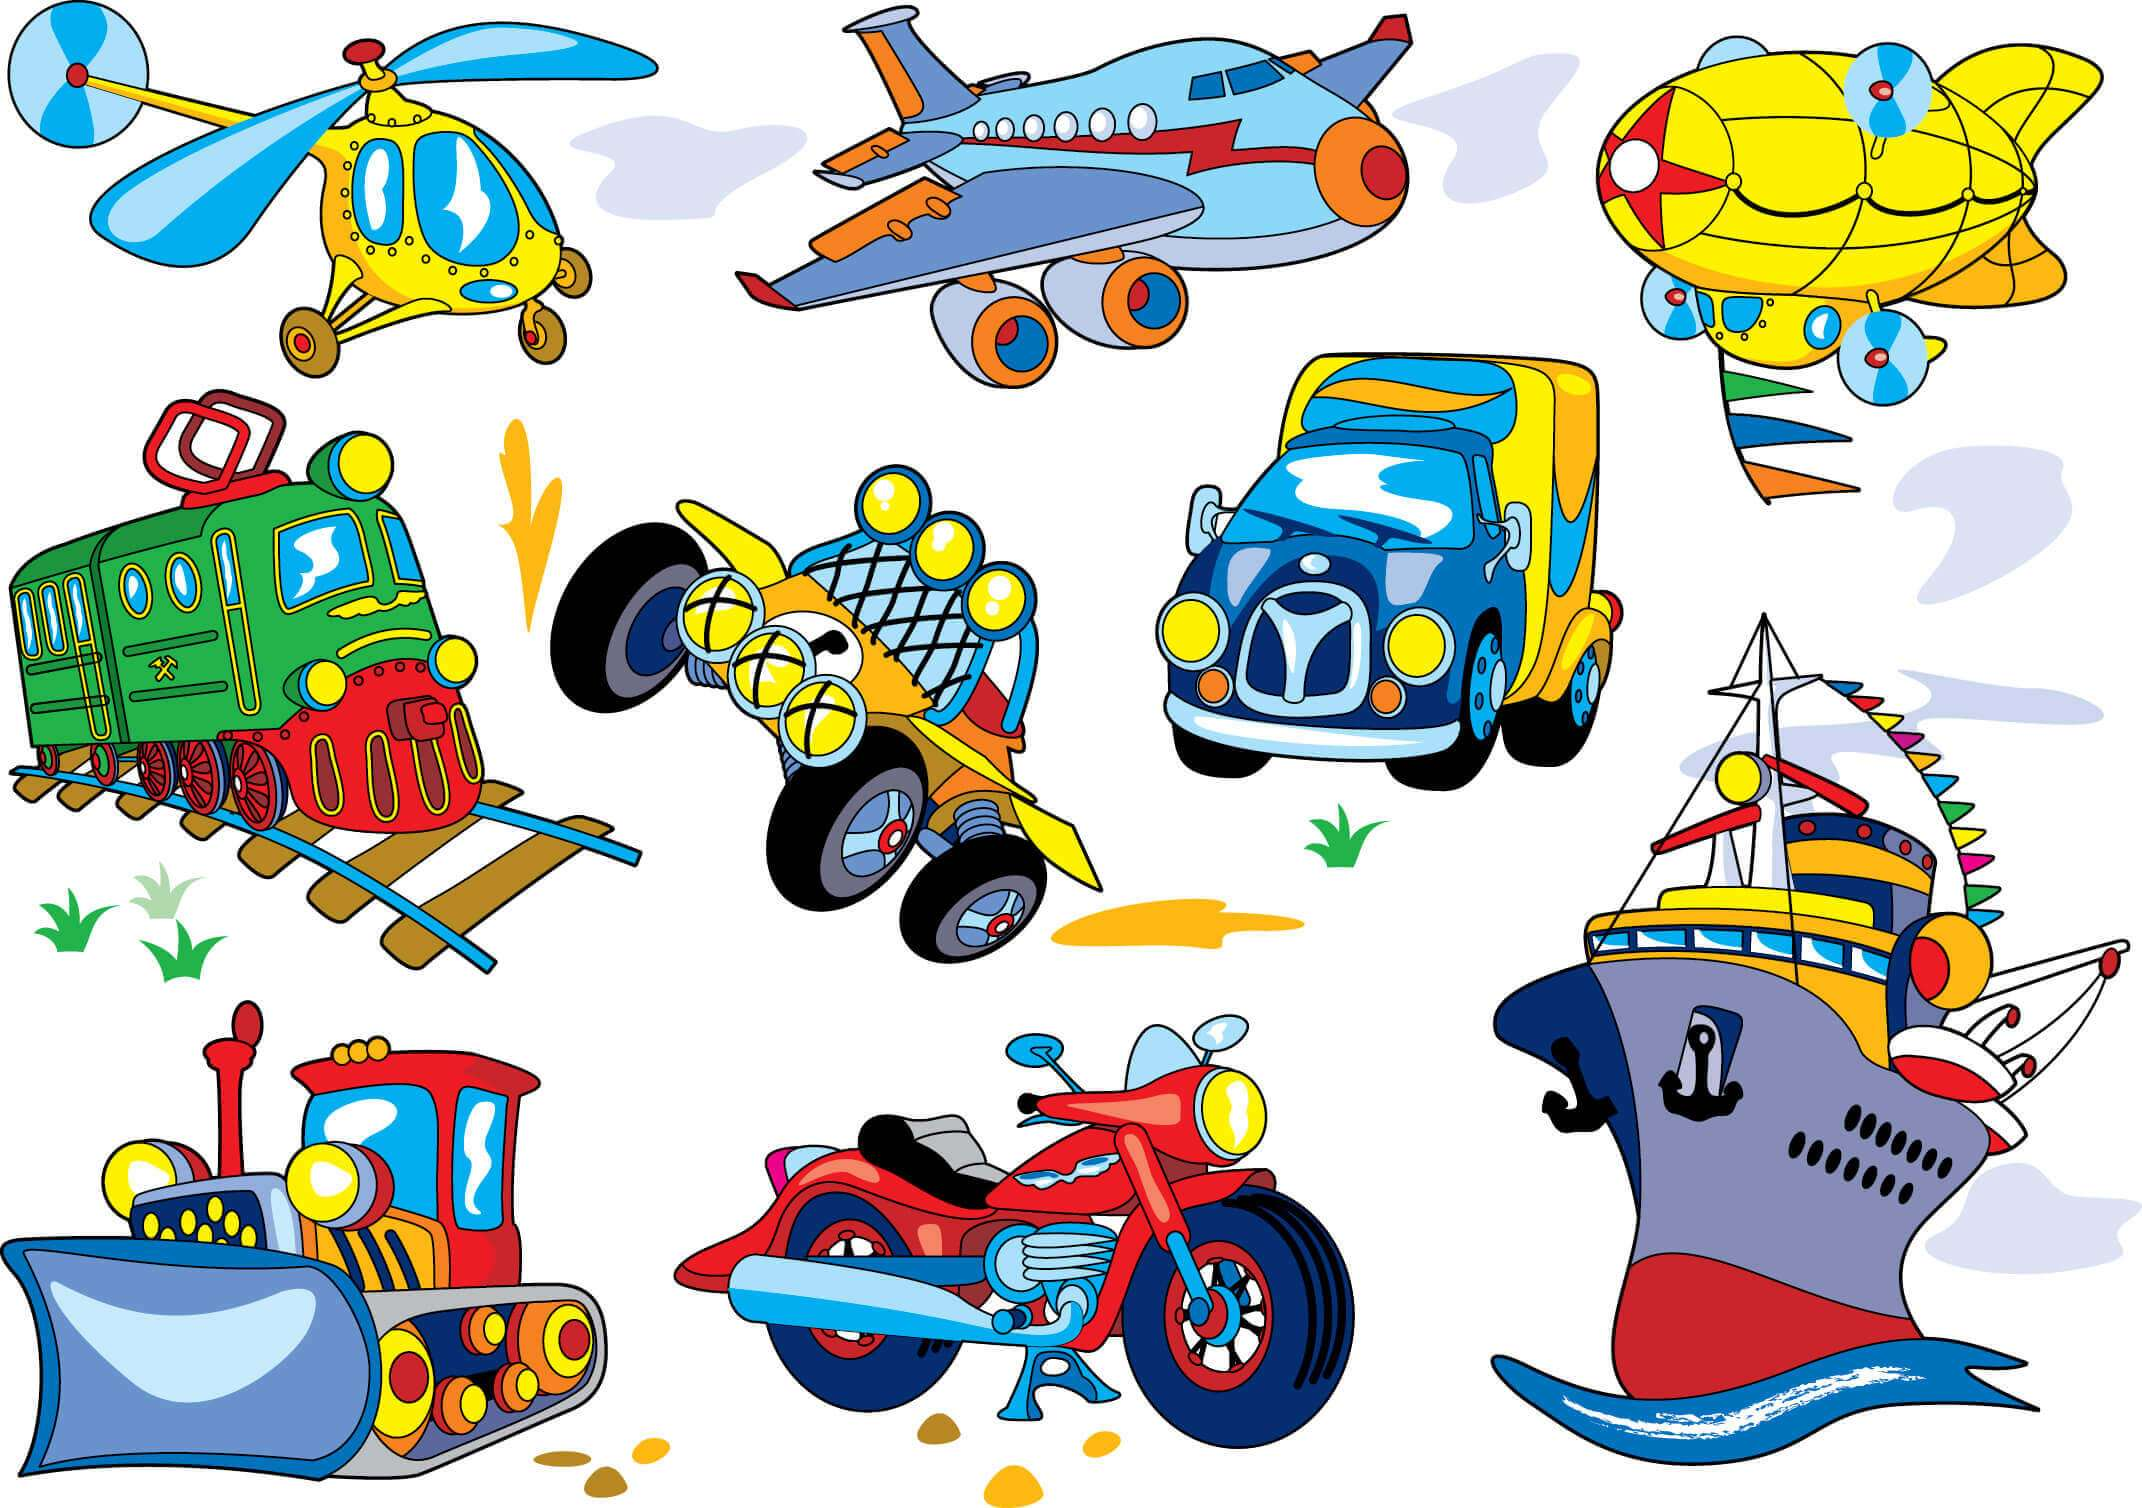 Transport, Helicopter, Plane, Zeplin, Train, Car, Ship, Motorcycle png